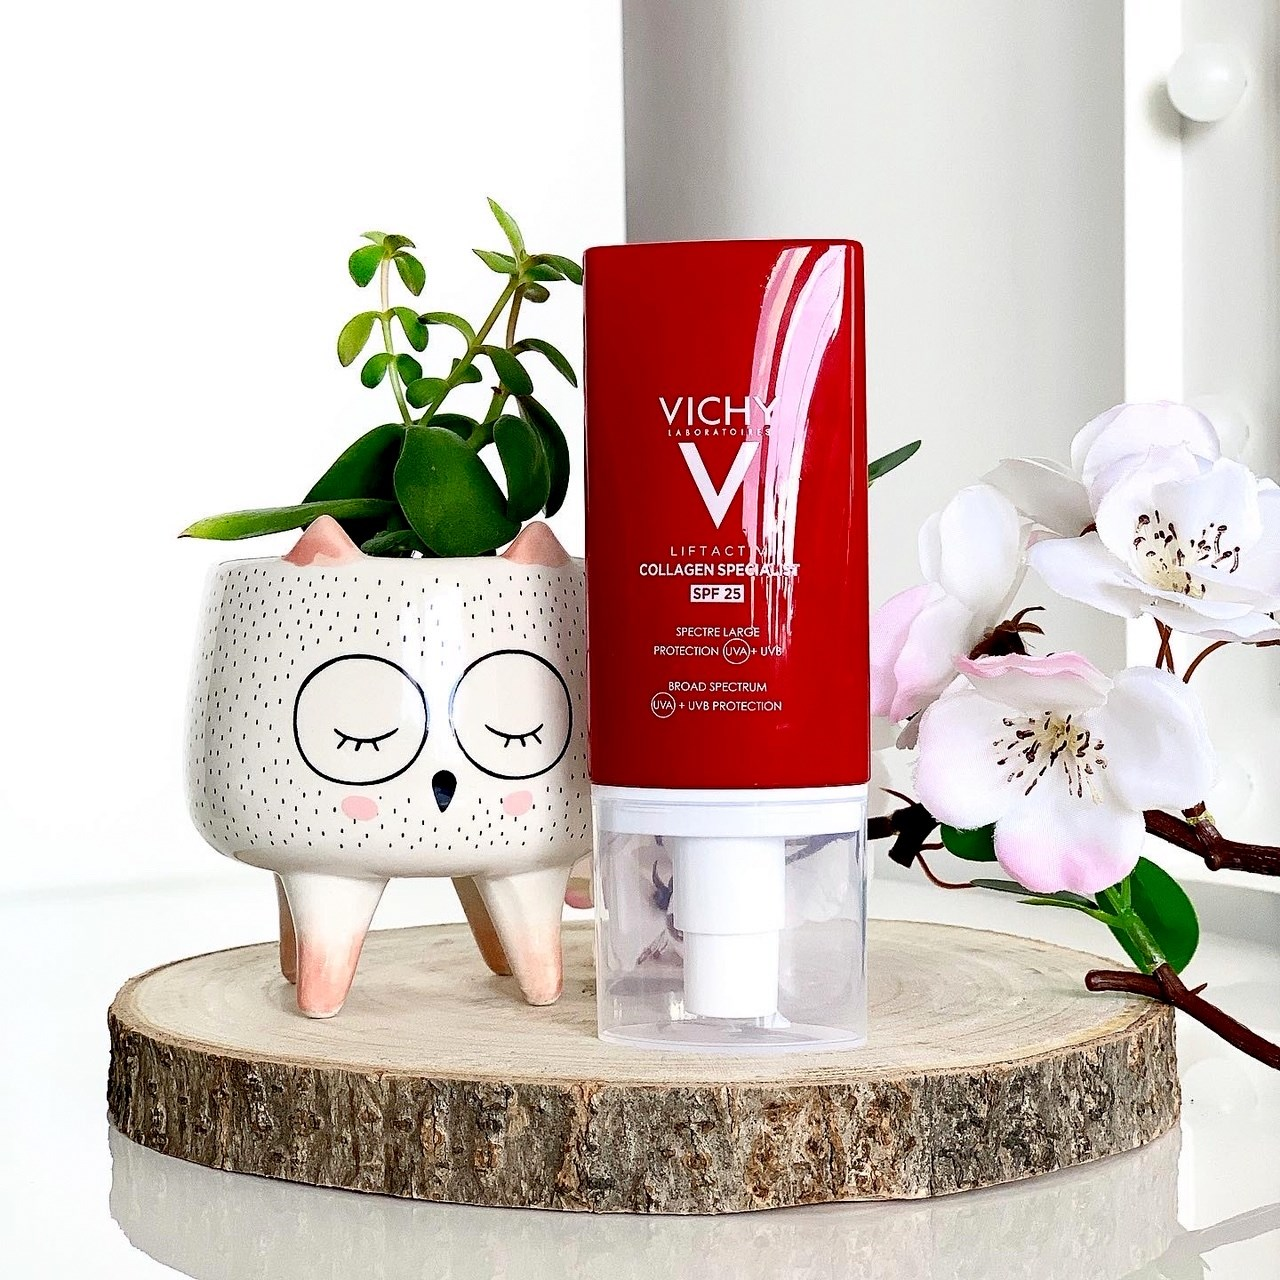 Vichy Liftactiv Collagen Specialist SPF 25